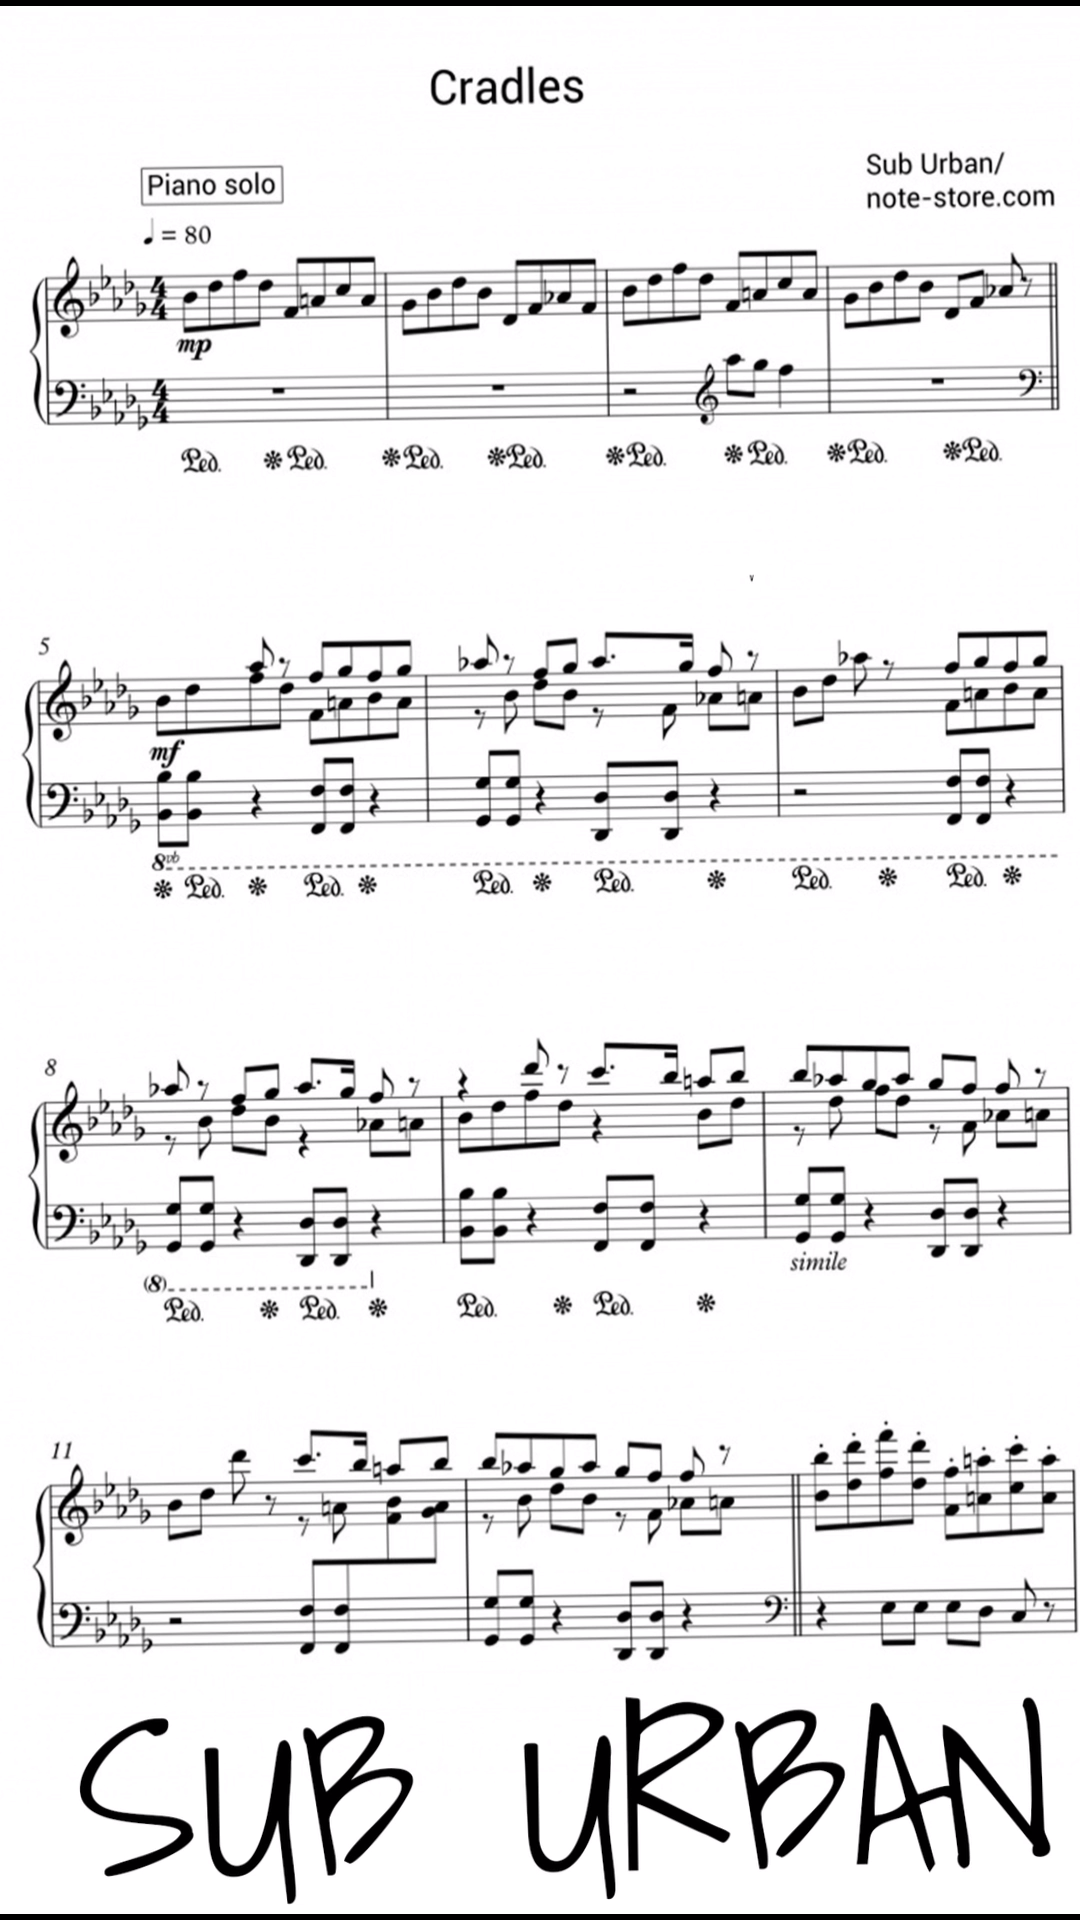 You're able to download printable sheet music Sub Urban - Cradles for piano (Piano.Solo SKU PSO0013433) at our online store of digital music. All music sheet in excellent quality from professional musicians!